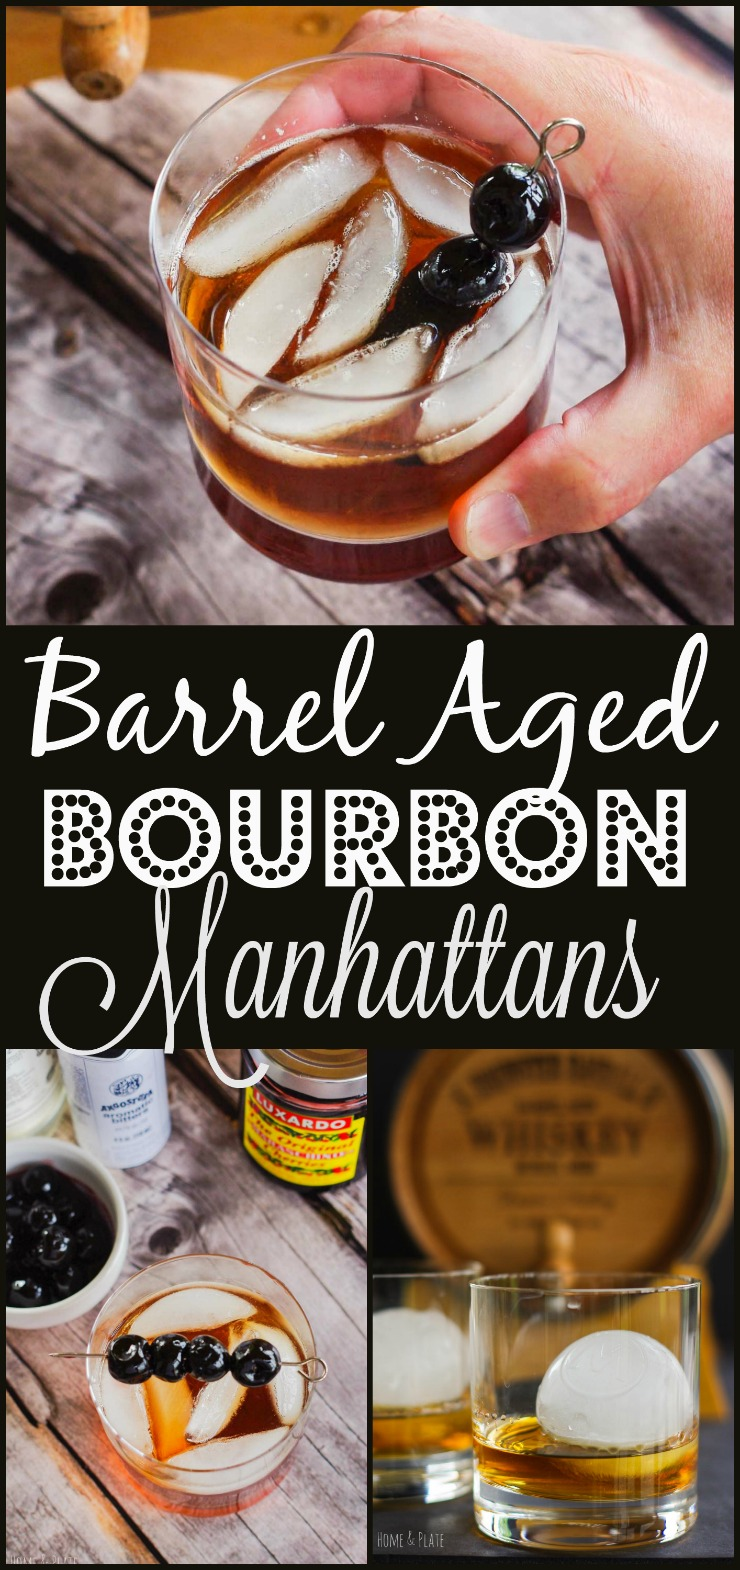 Barrel-Aged Bourbon Manhattan | www.homeandplate.com | A 5-liter miniature oak barrel is the perfect size for accentuating the flavor of quality whiskeys and bourbons. If you're a fan, then this Barrel-Aged Bourbon Manhattan cocktail is for you. It's a twist on a classic. Also check out my other barrel recipes and my review of the Personalized Whiskey Barrel and Whiskey Ice Balls from UncommonGoods. #ad